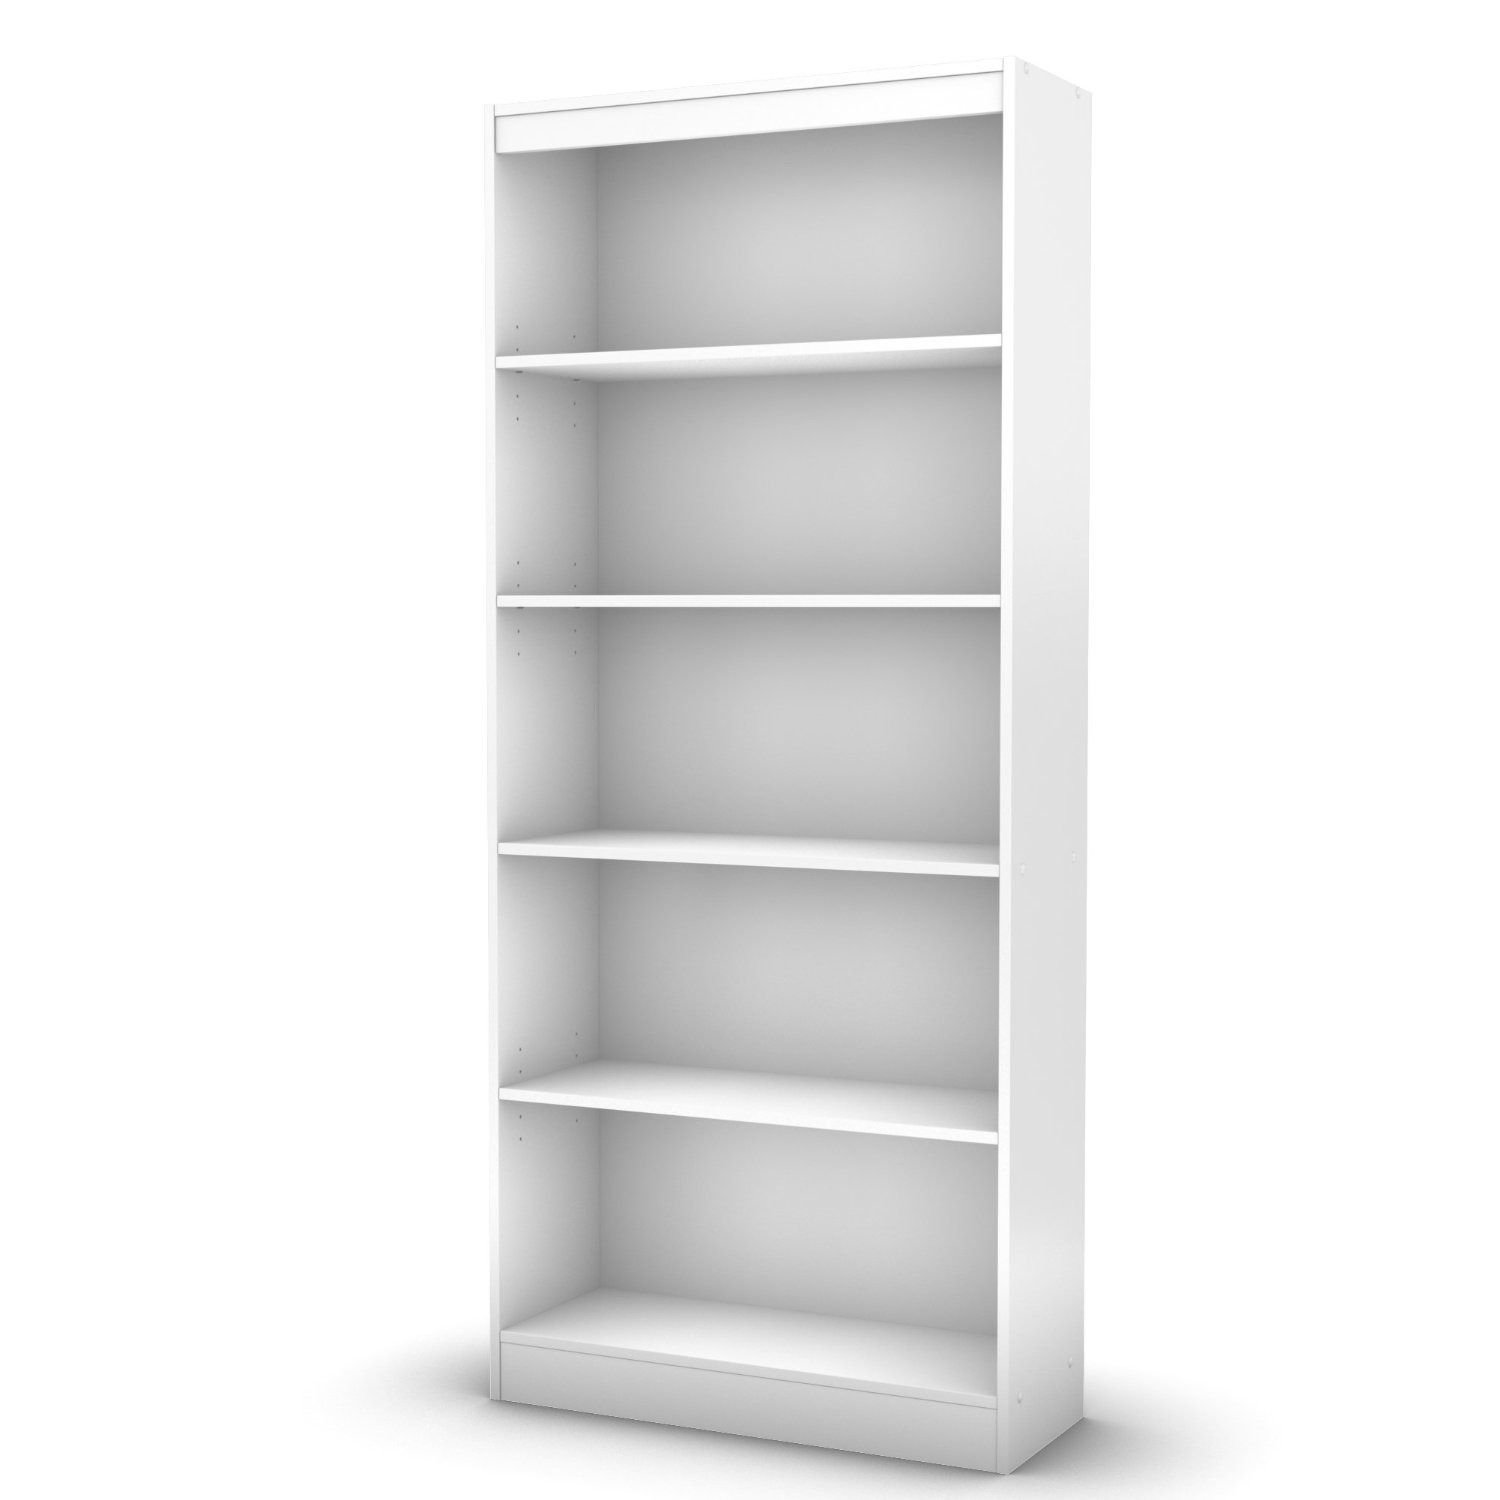 Stupendous Top 30 Collection Of White Bookcases And Bookshelfs Download Free Architecture Designs Rallybritishbridgeorg